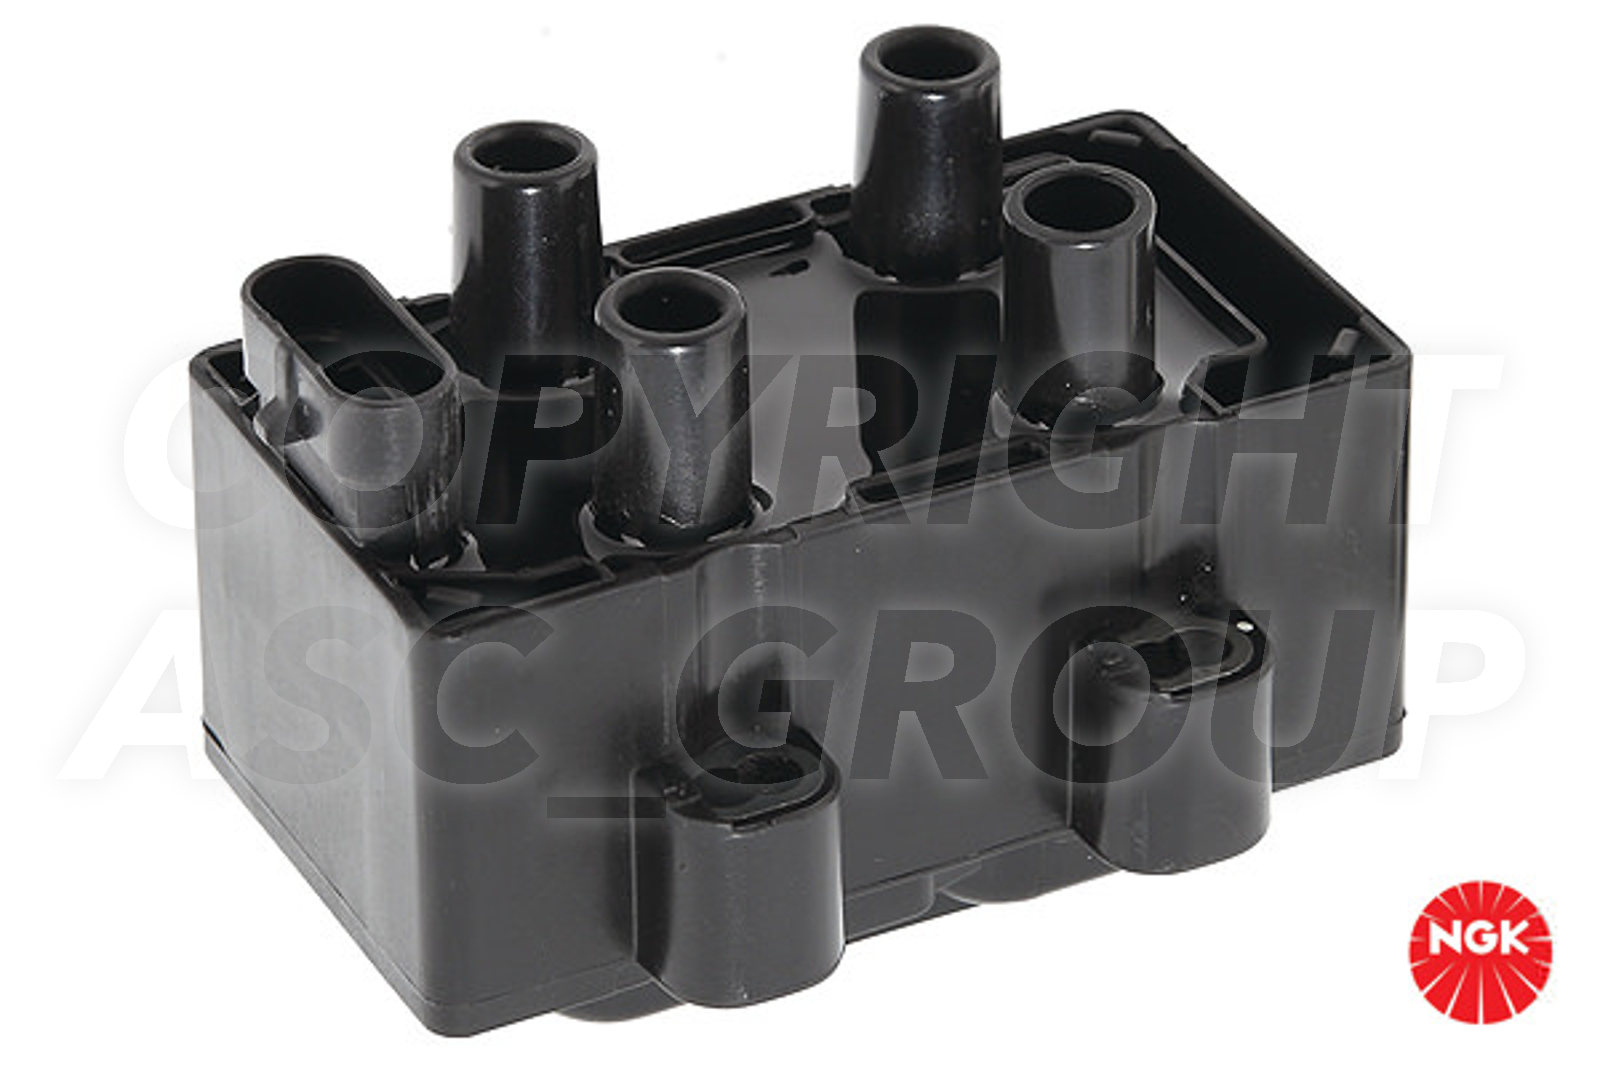 new ngk ignition coil for renault clio mk 3 1 2 turbo tce 100 hatchback 2007 09 ebay. Black Bedroom Furniture Sets. Home Design Ideas